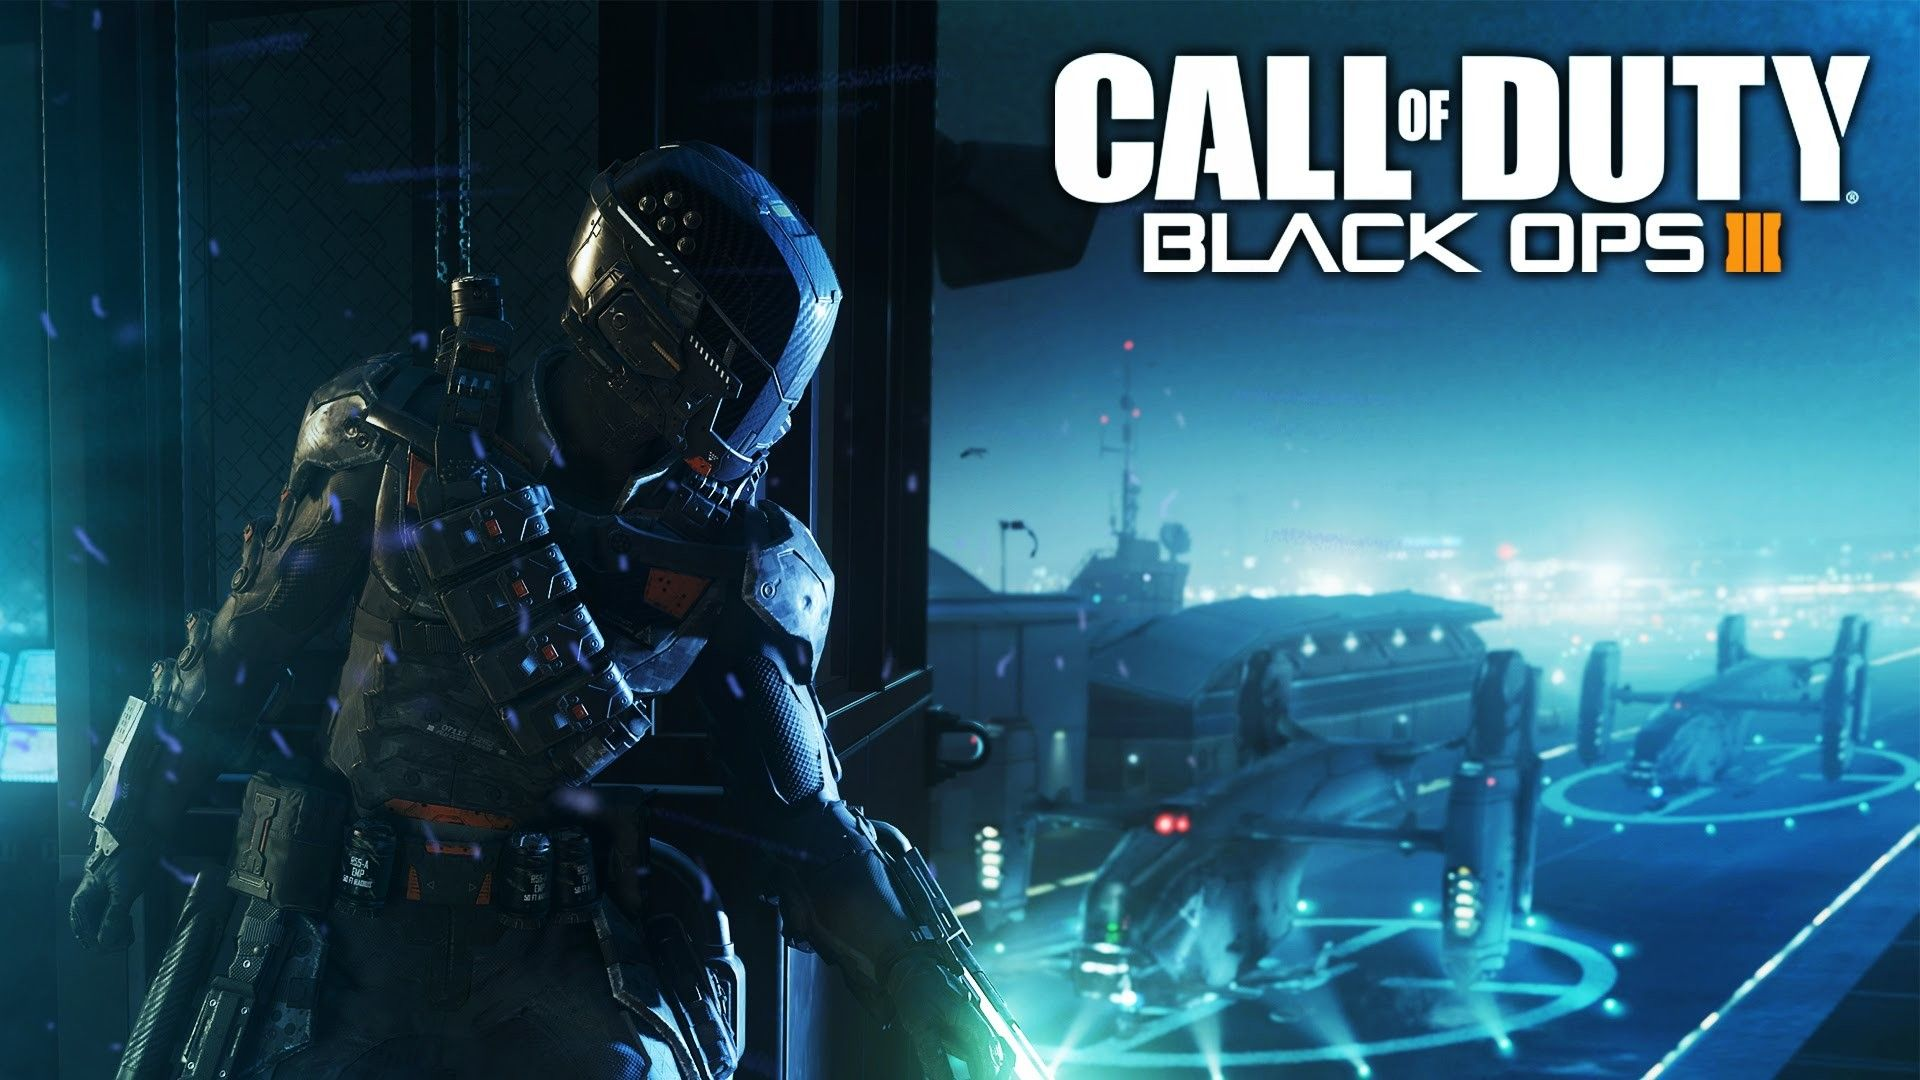 Call Of Duty Wallpaper App Download In 2020 Call Of Duty Black Ops Iii Call Of Duty Black Call Of Duty Black Ops 3